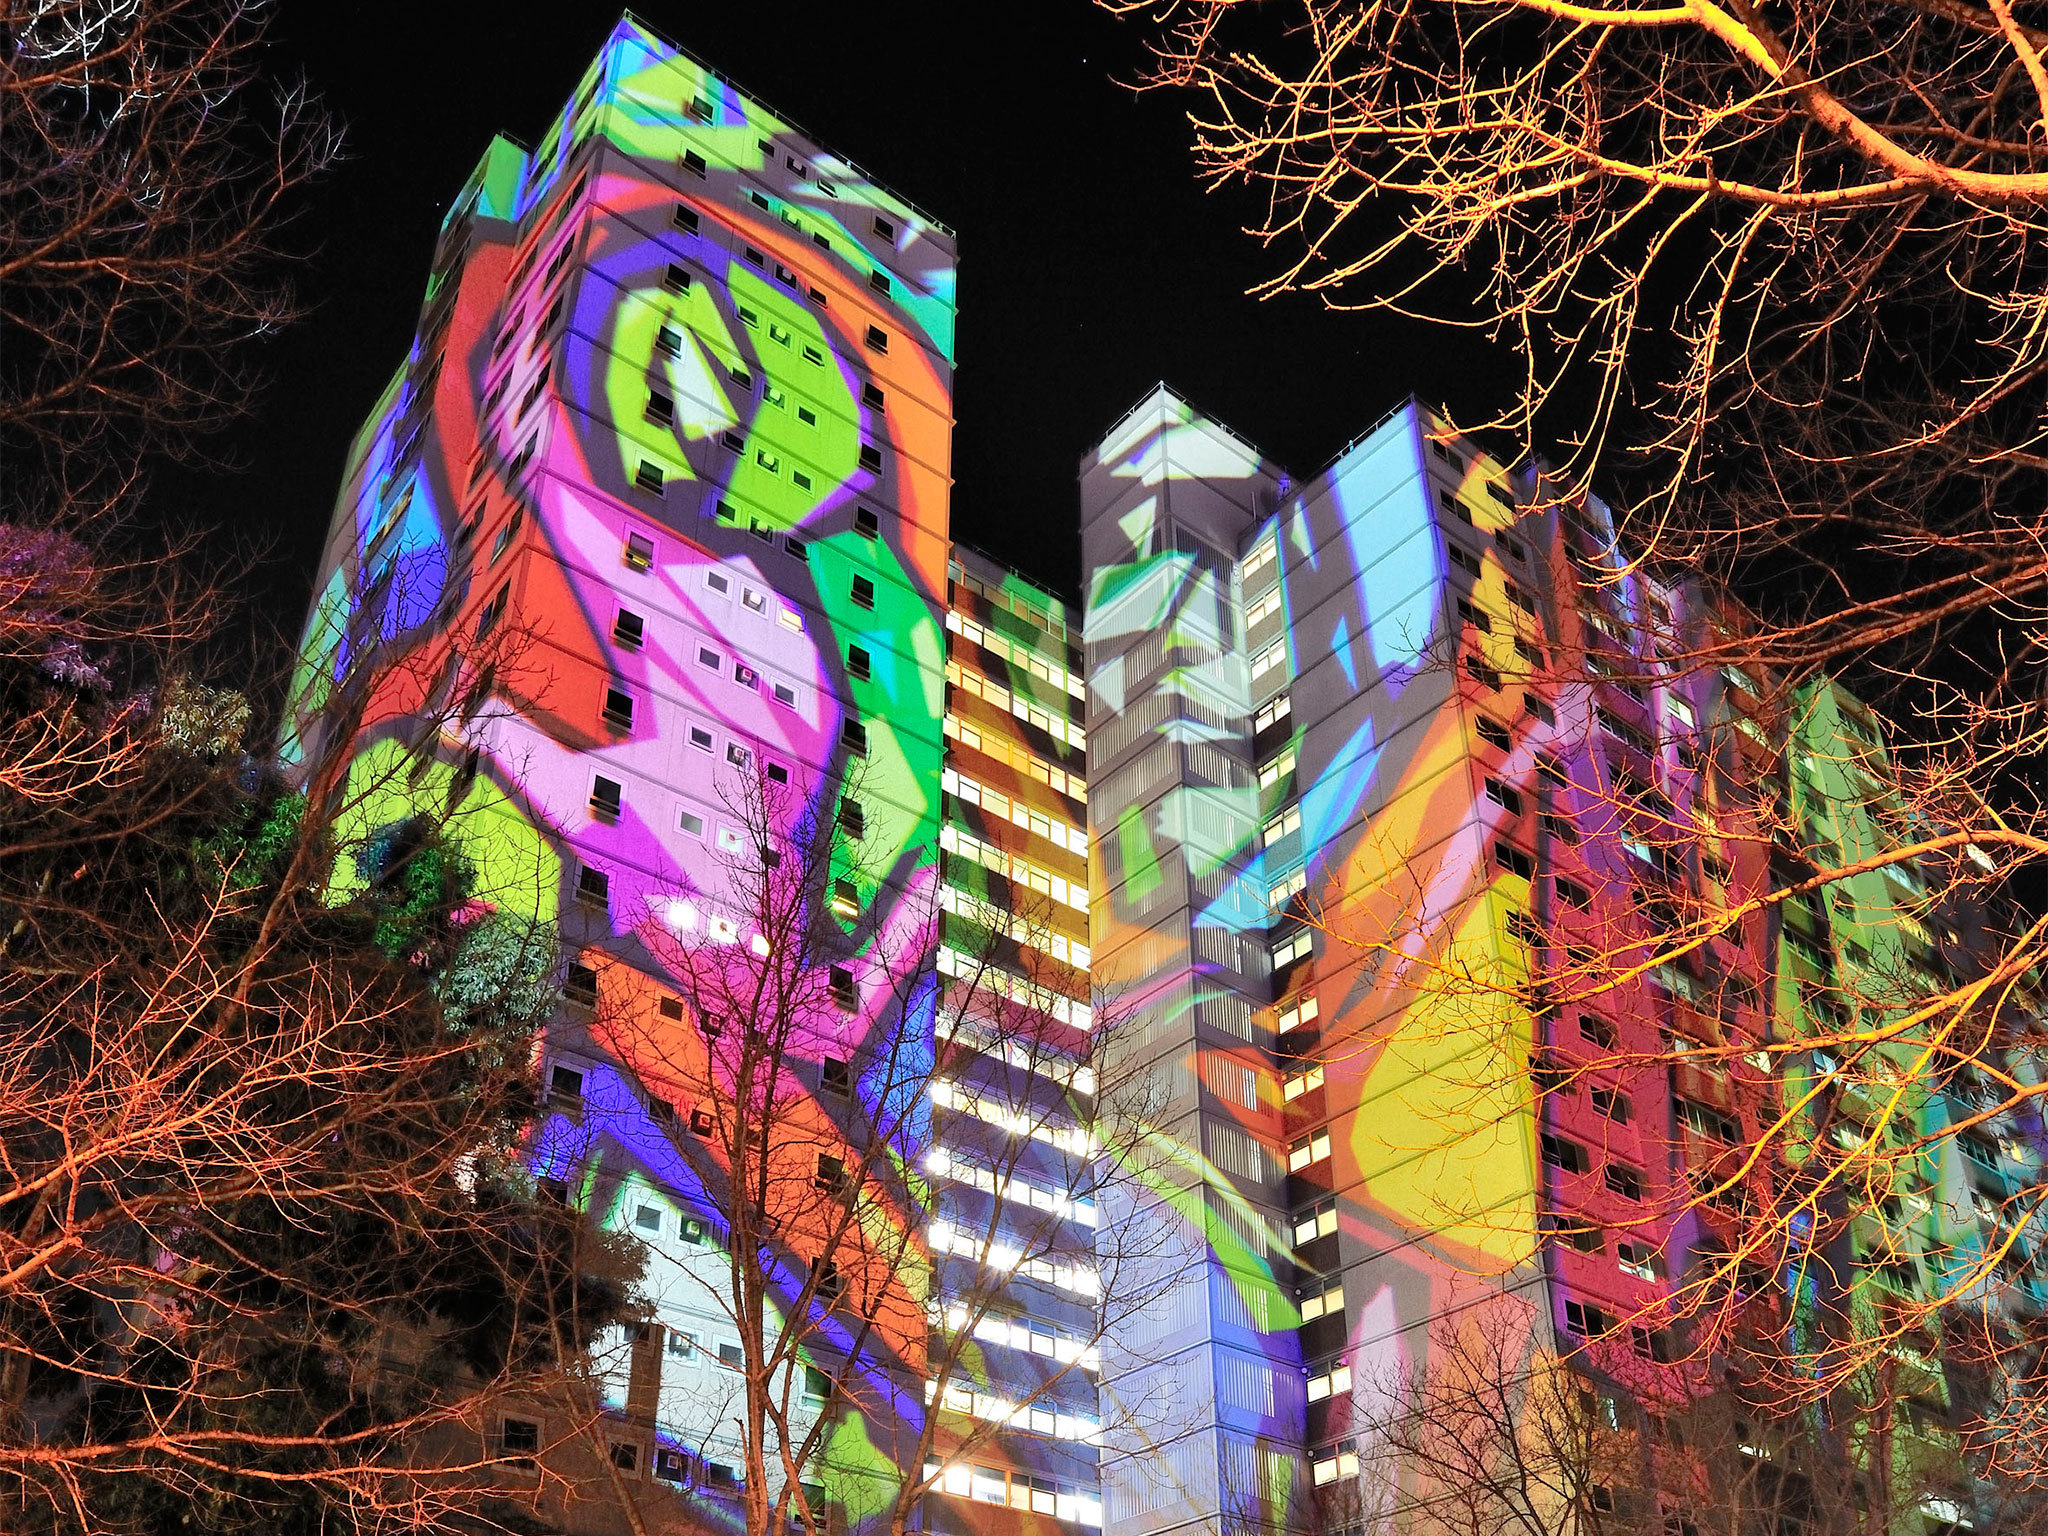 The Gertrude Street Projection Festival is back